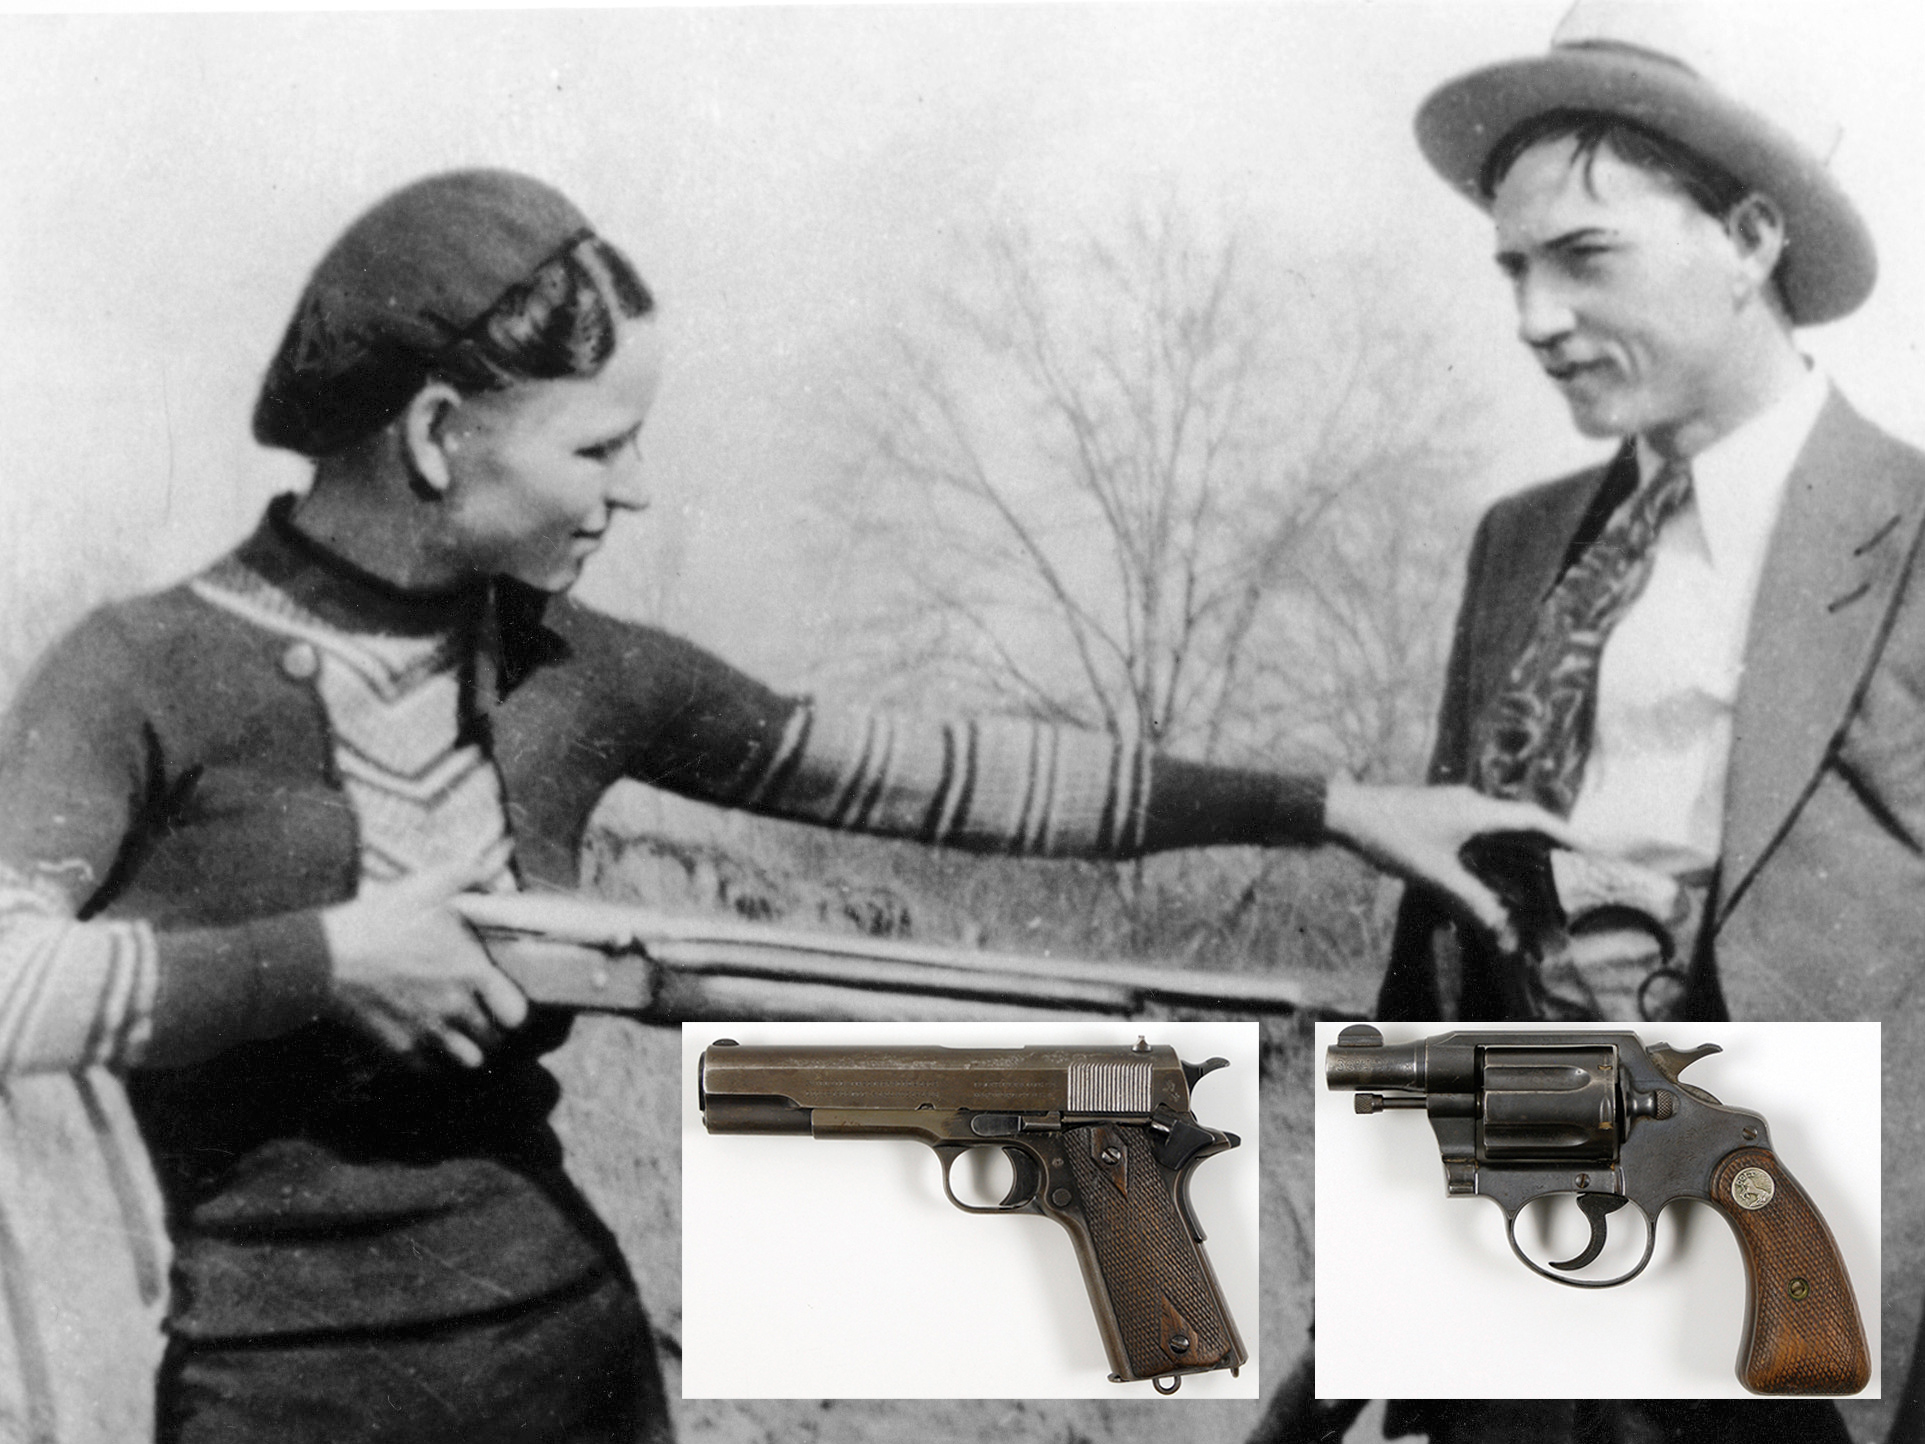 Bonnie and Clyde guns sold at auction for $504K - CBS News